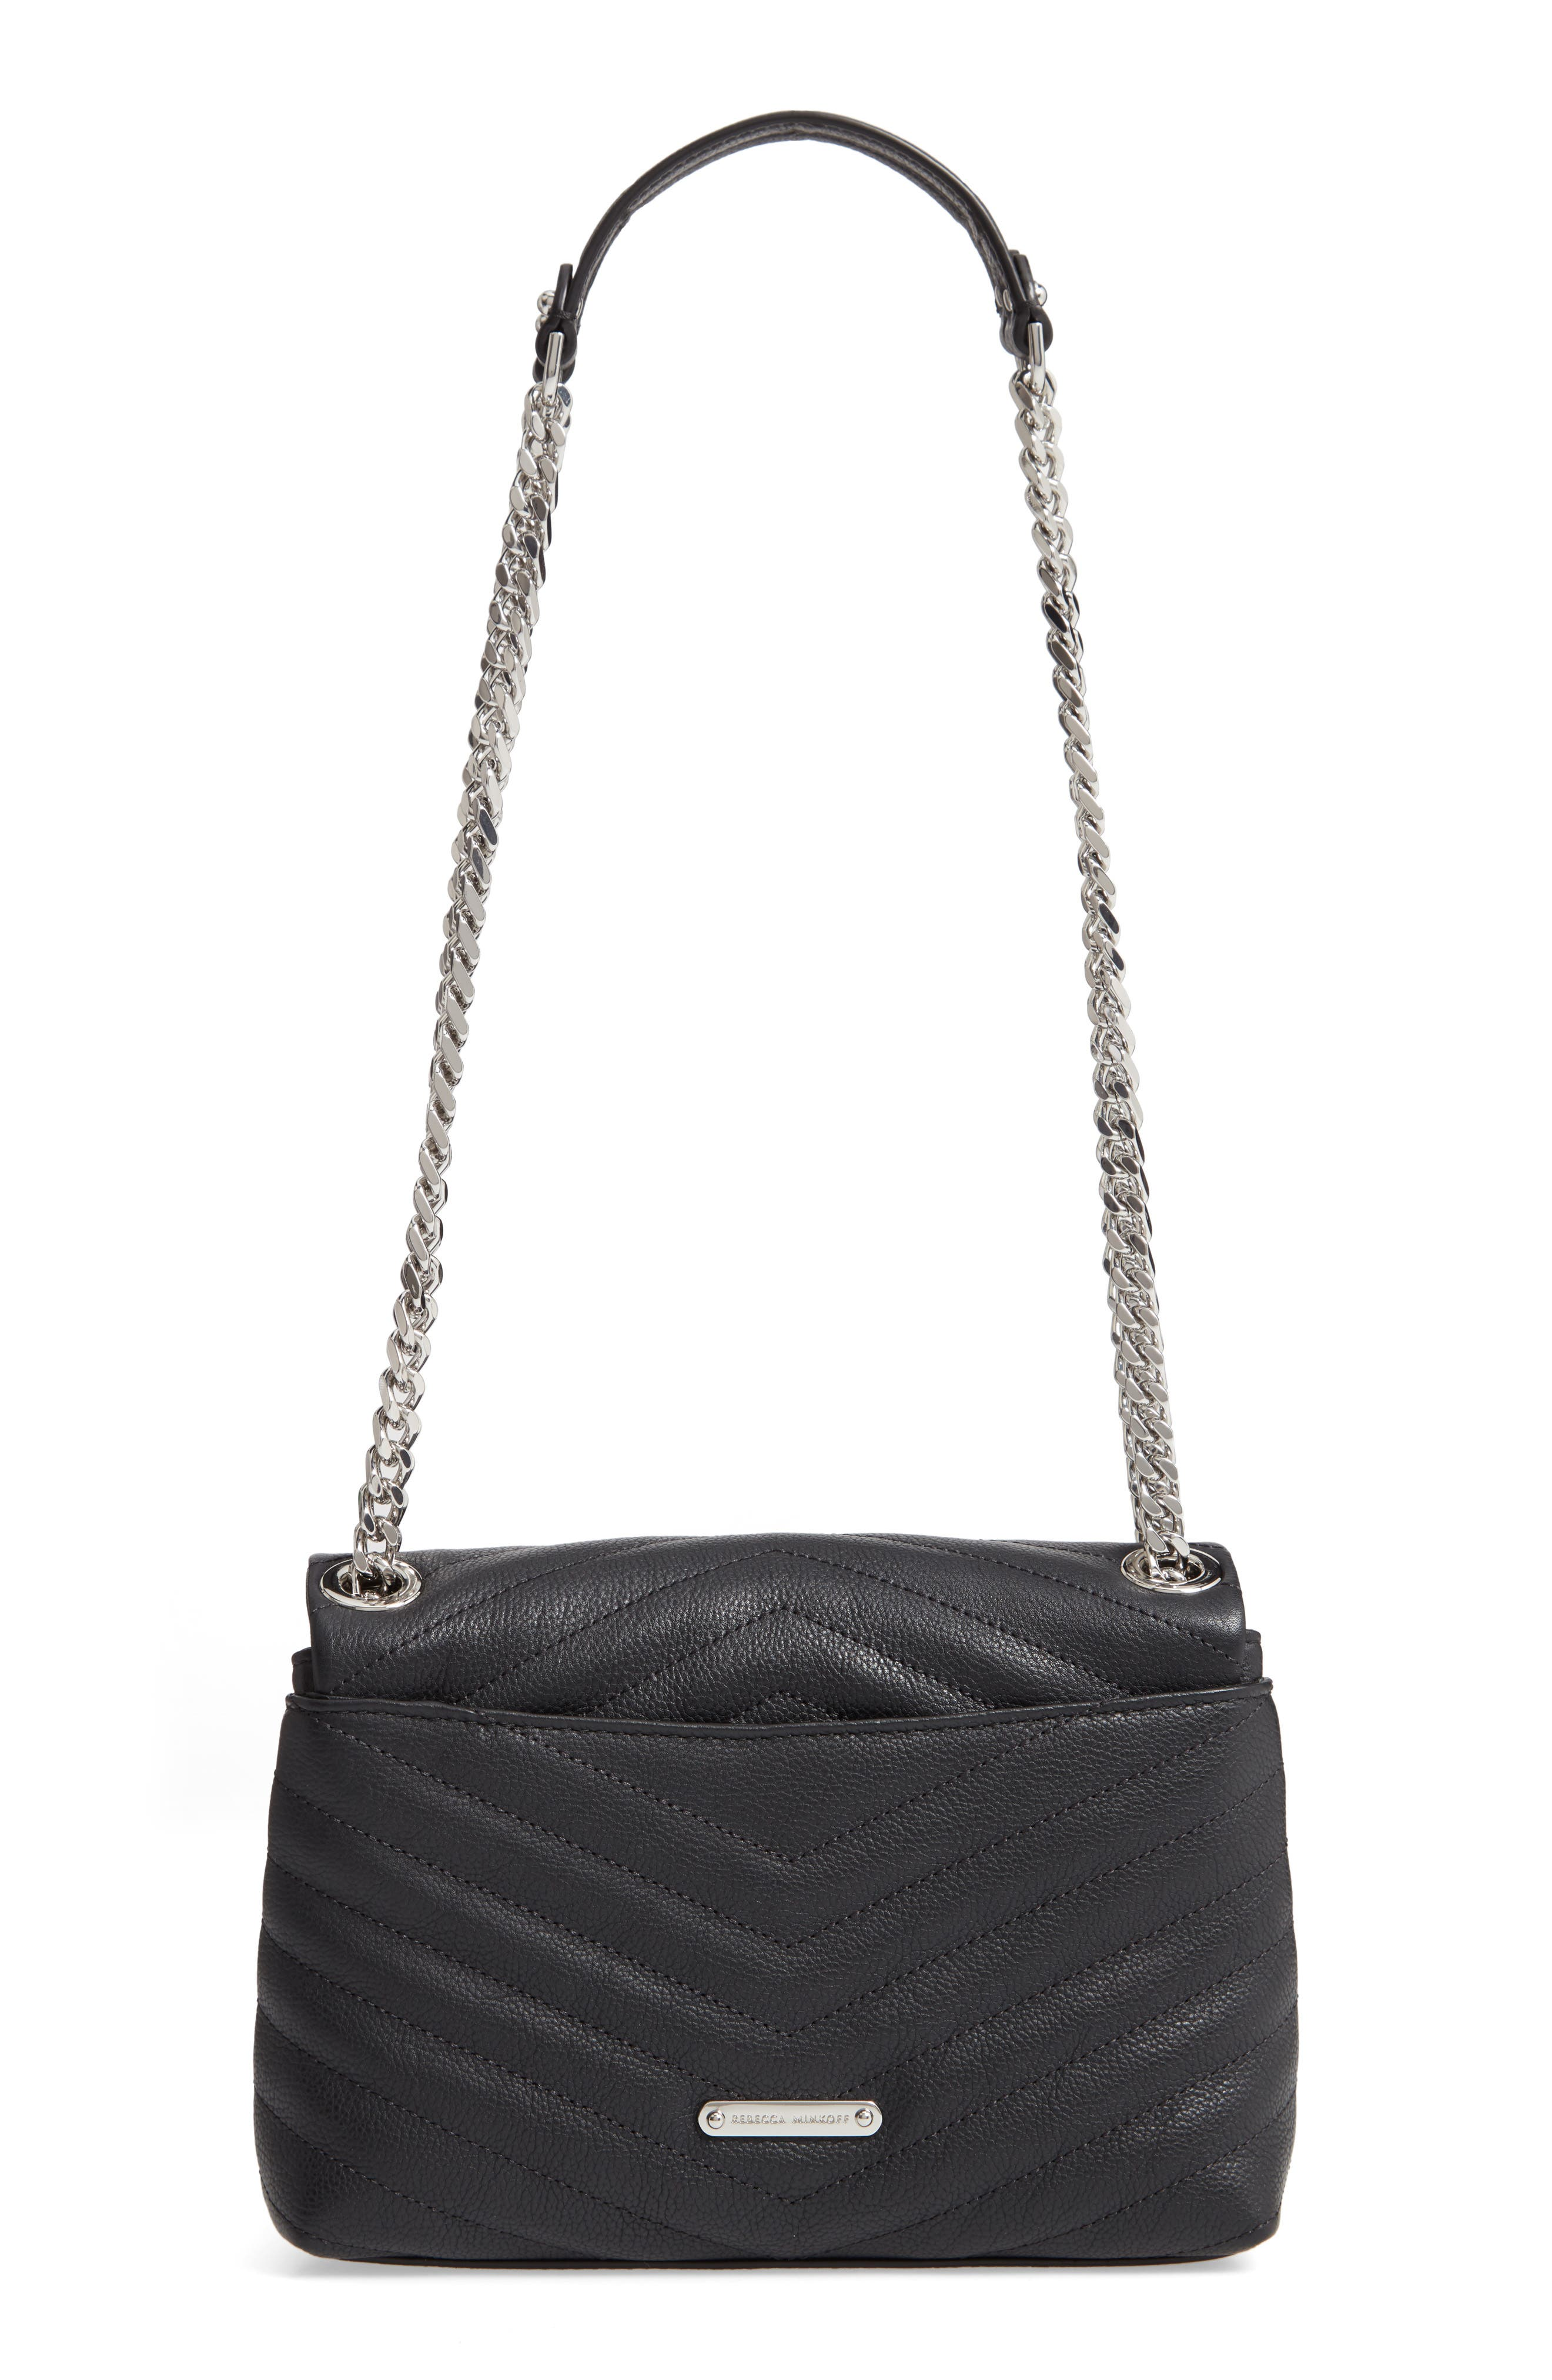 REBECCA MINKOFF, Edie Quilted Leather Crossbody Bag, Alternate thumbnail 4, color, BLACK